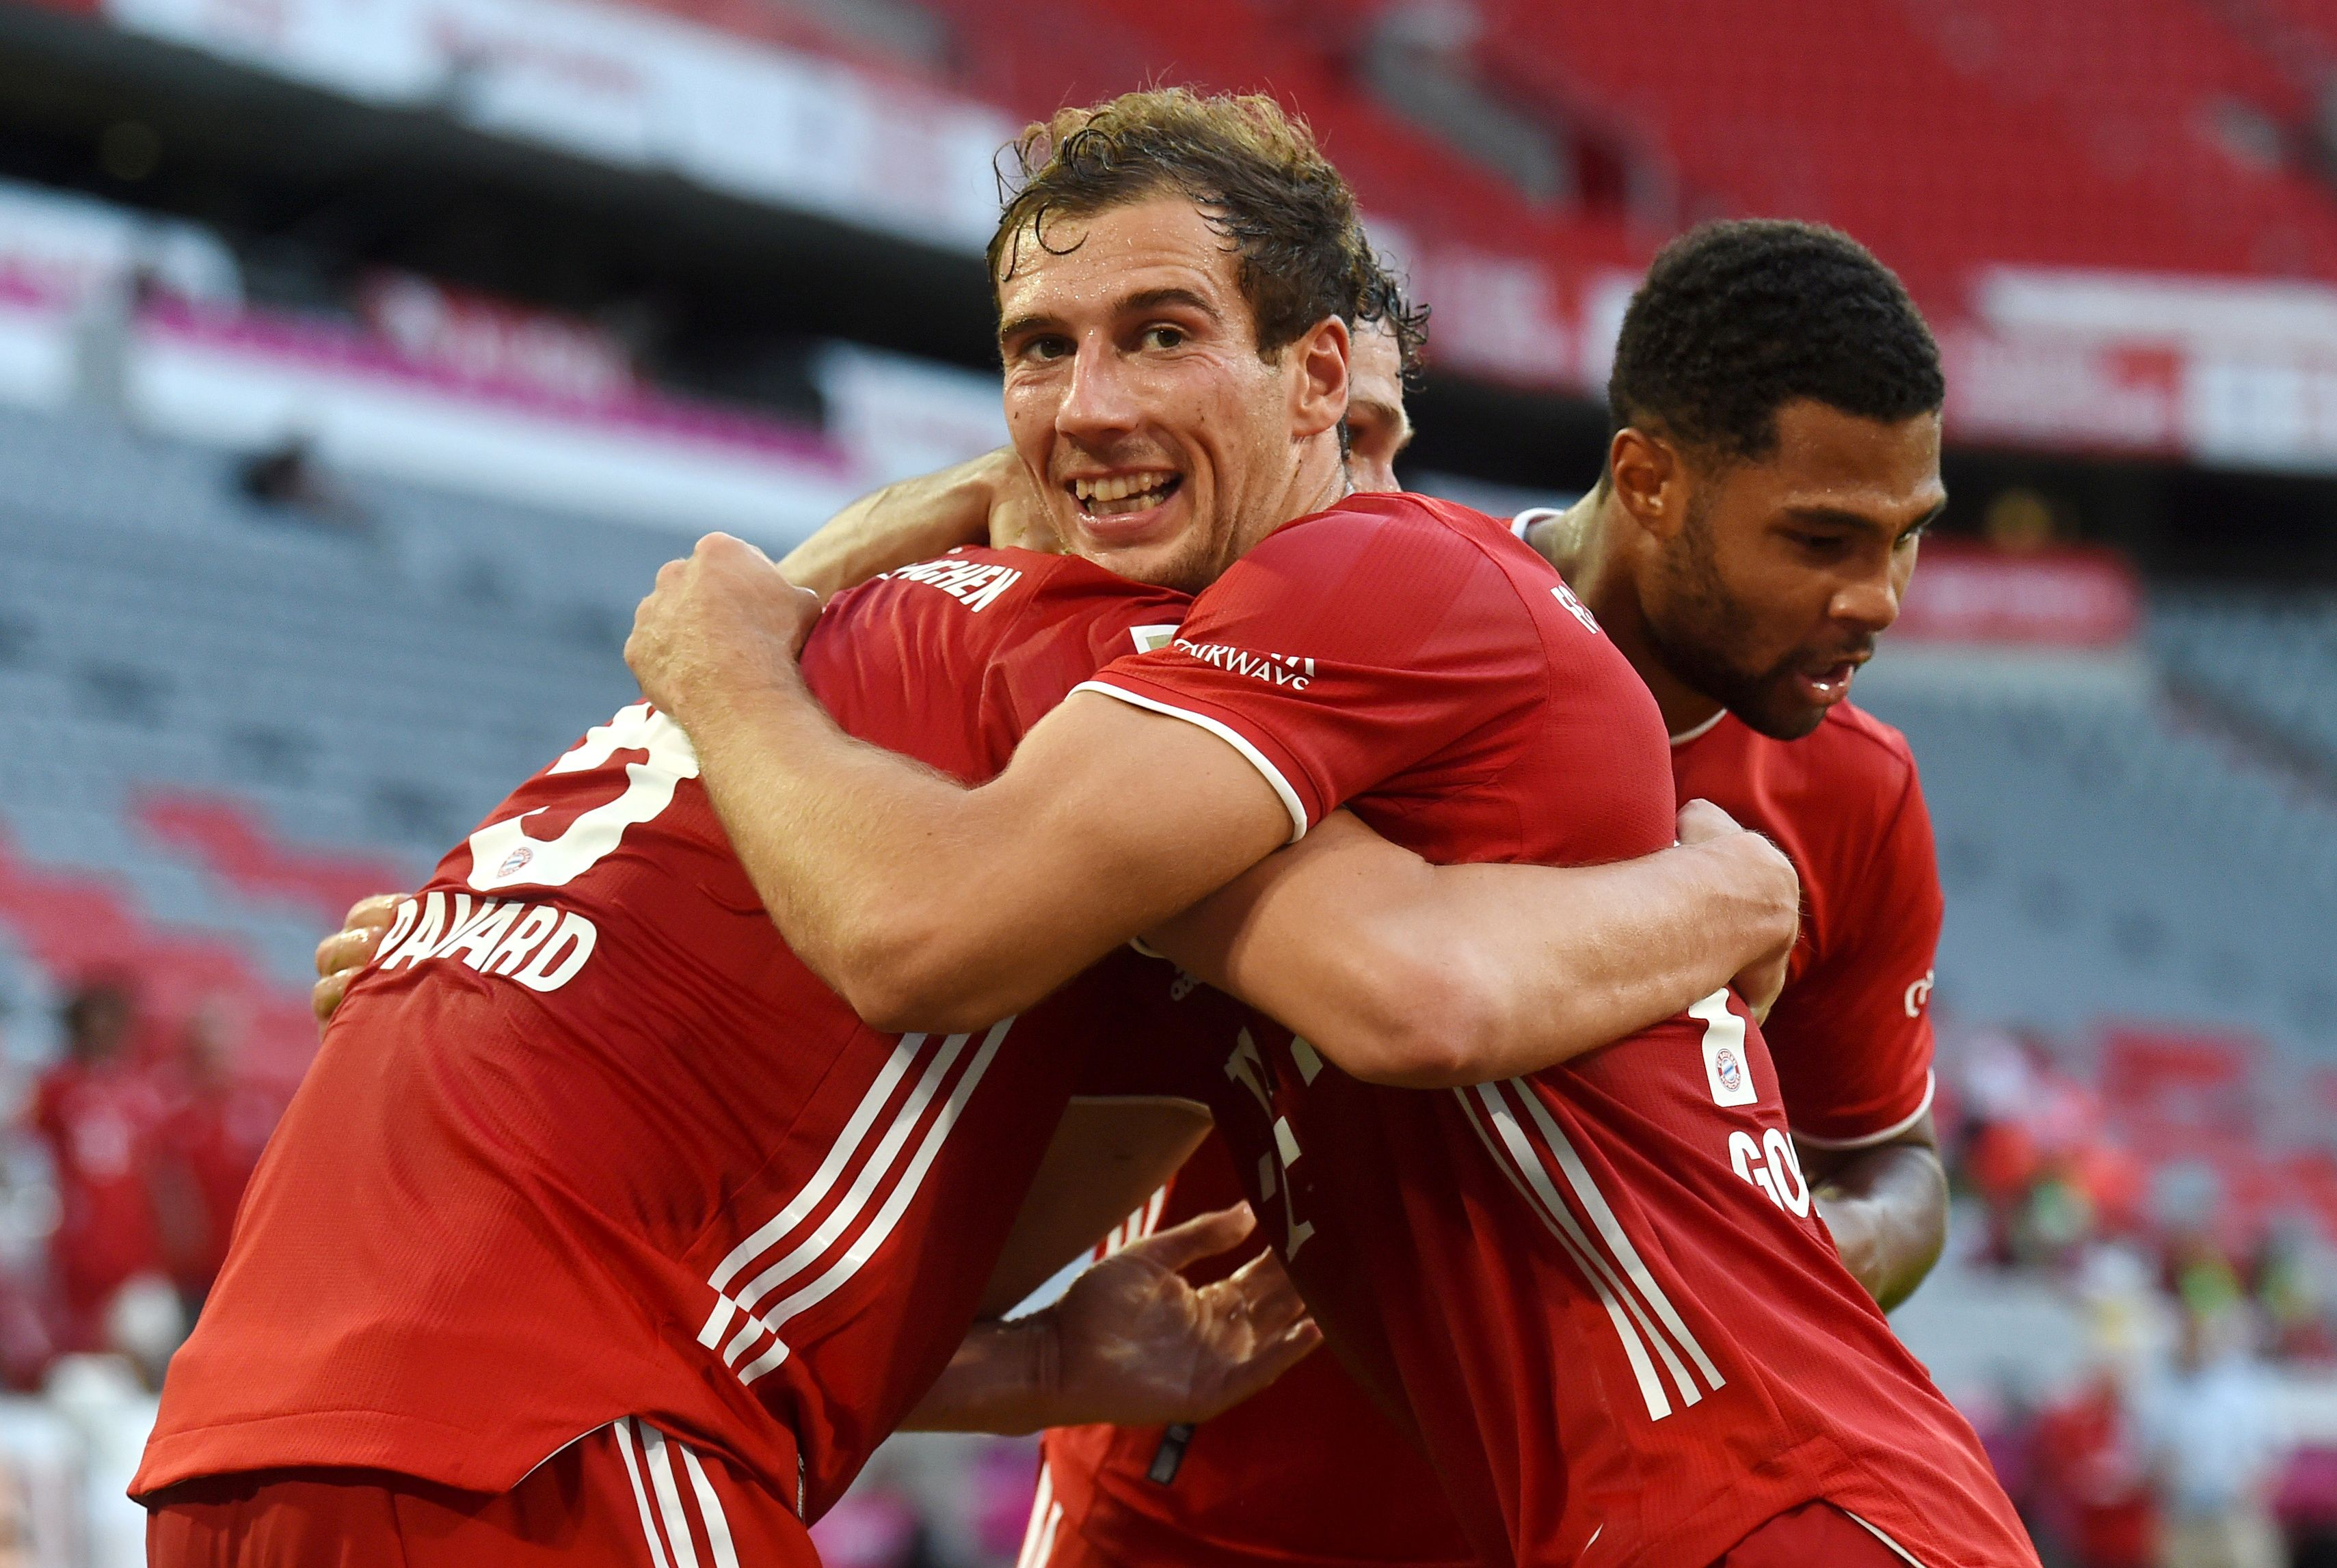 Bayern Munich's Leon Goretzka celebrates scoring their second goal with teammates, as play resumes behind closed doors following the outbreak of the coronavirus disease (COVID-19) during the Bundesliga match between Bayern Munich and Borussia Moenchengladbach, at Allianz Arena, in Munich, Germany, on June 13, 2020. Photo:  Christof Stache/Pool via Reuters